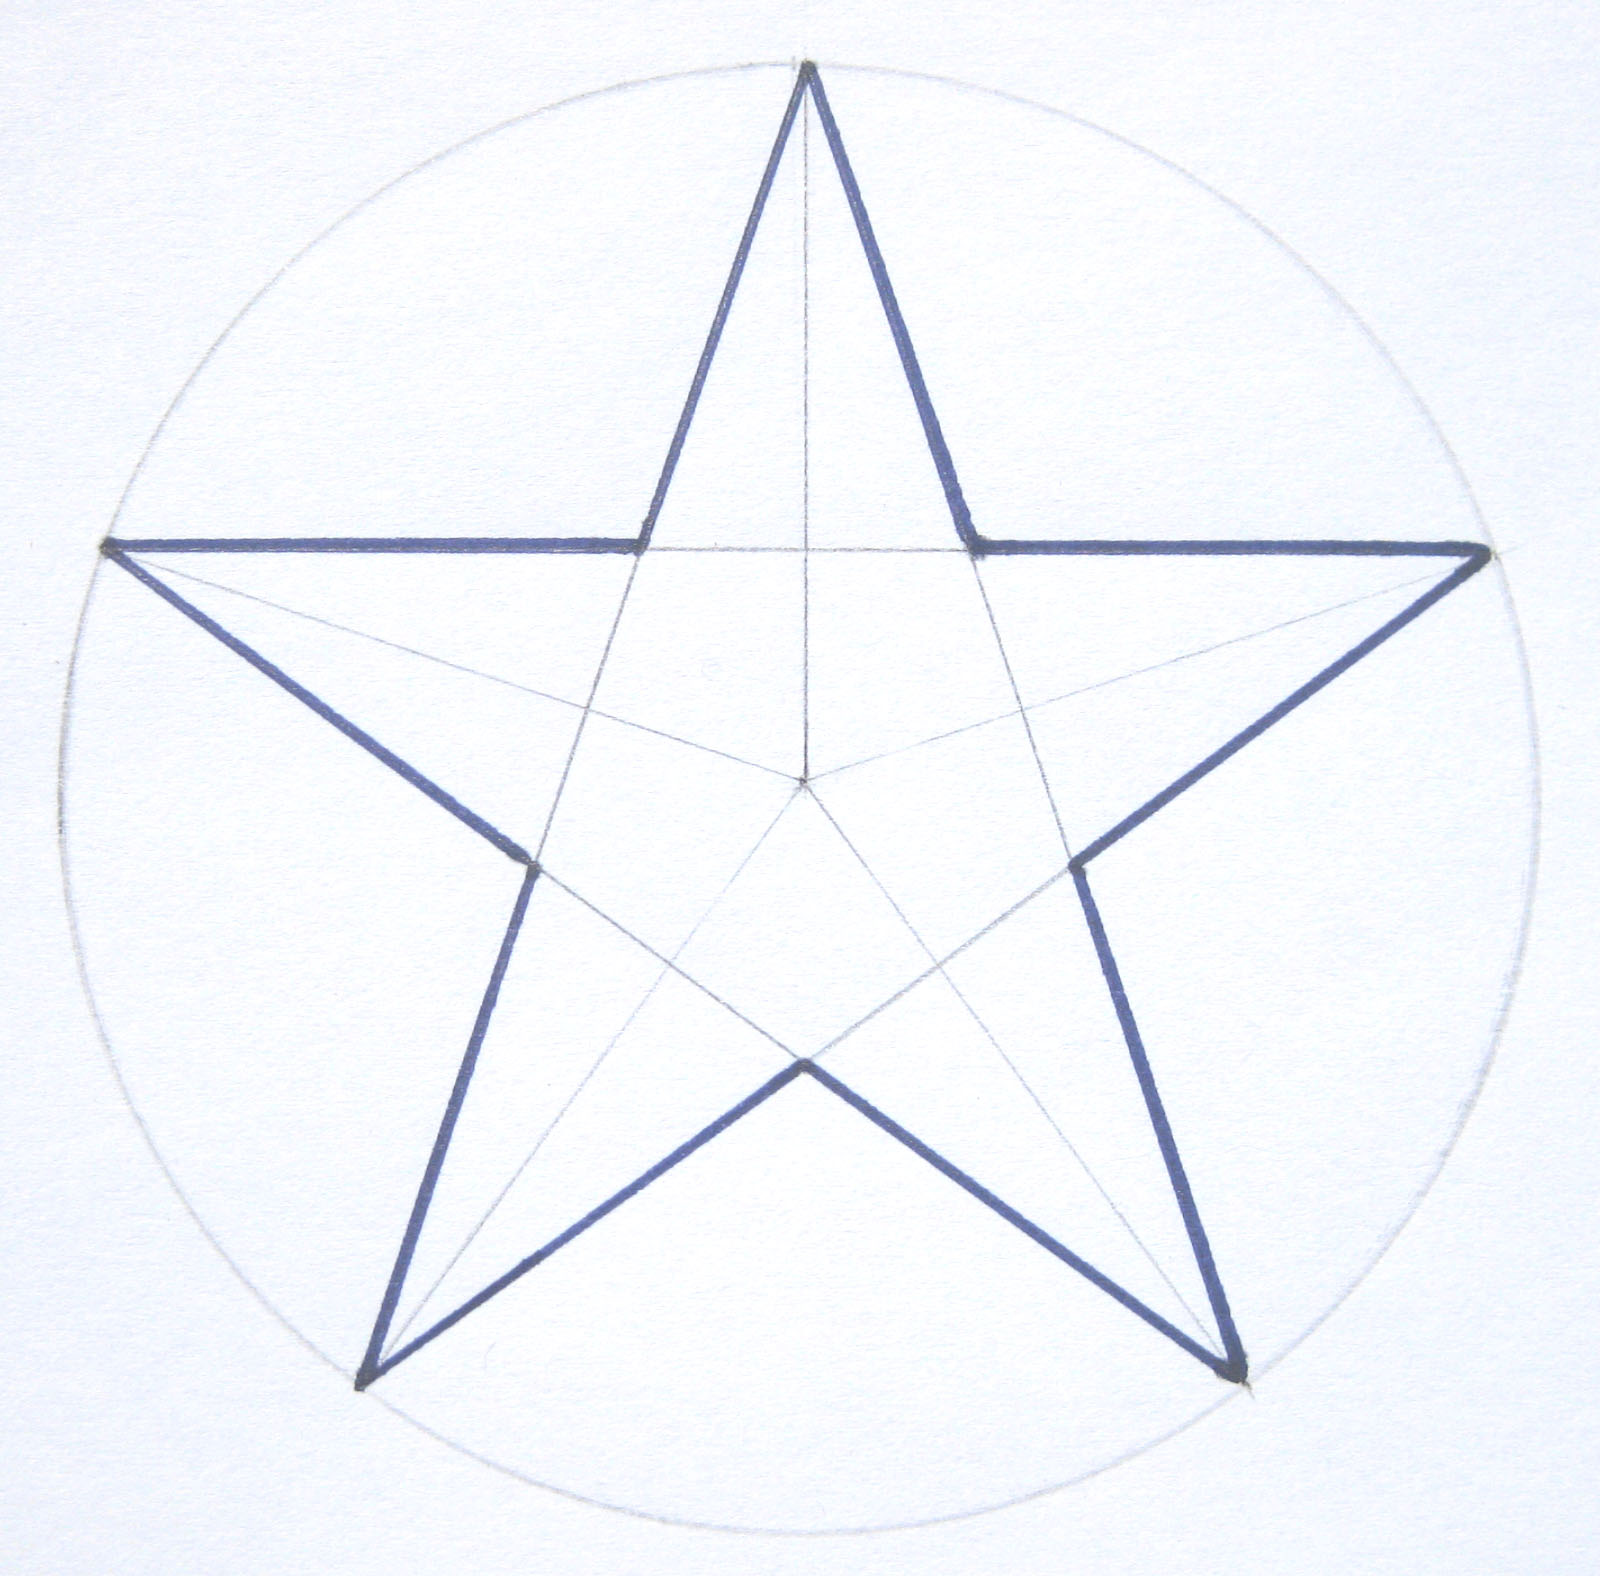 5 Point Star Jpg http://daysofstargazing.blogspot.com/2011_09_01_archive.html